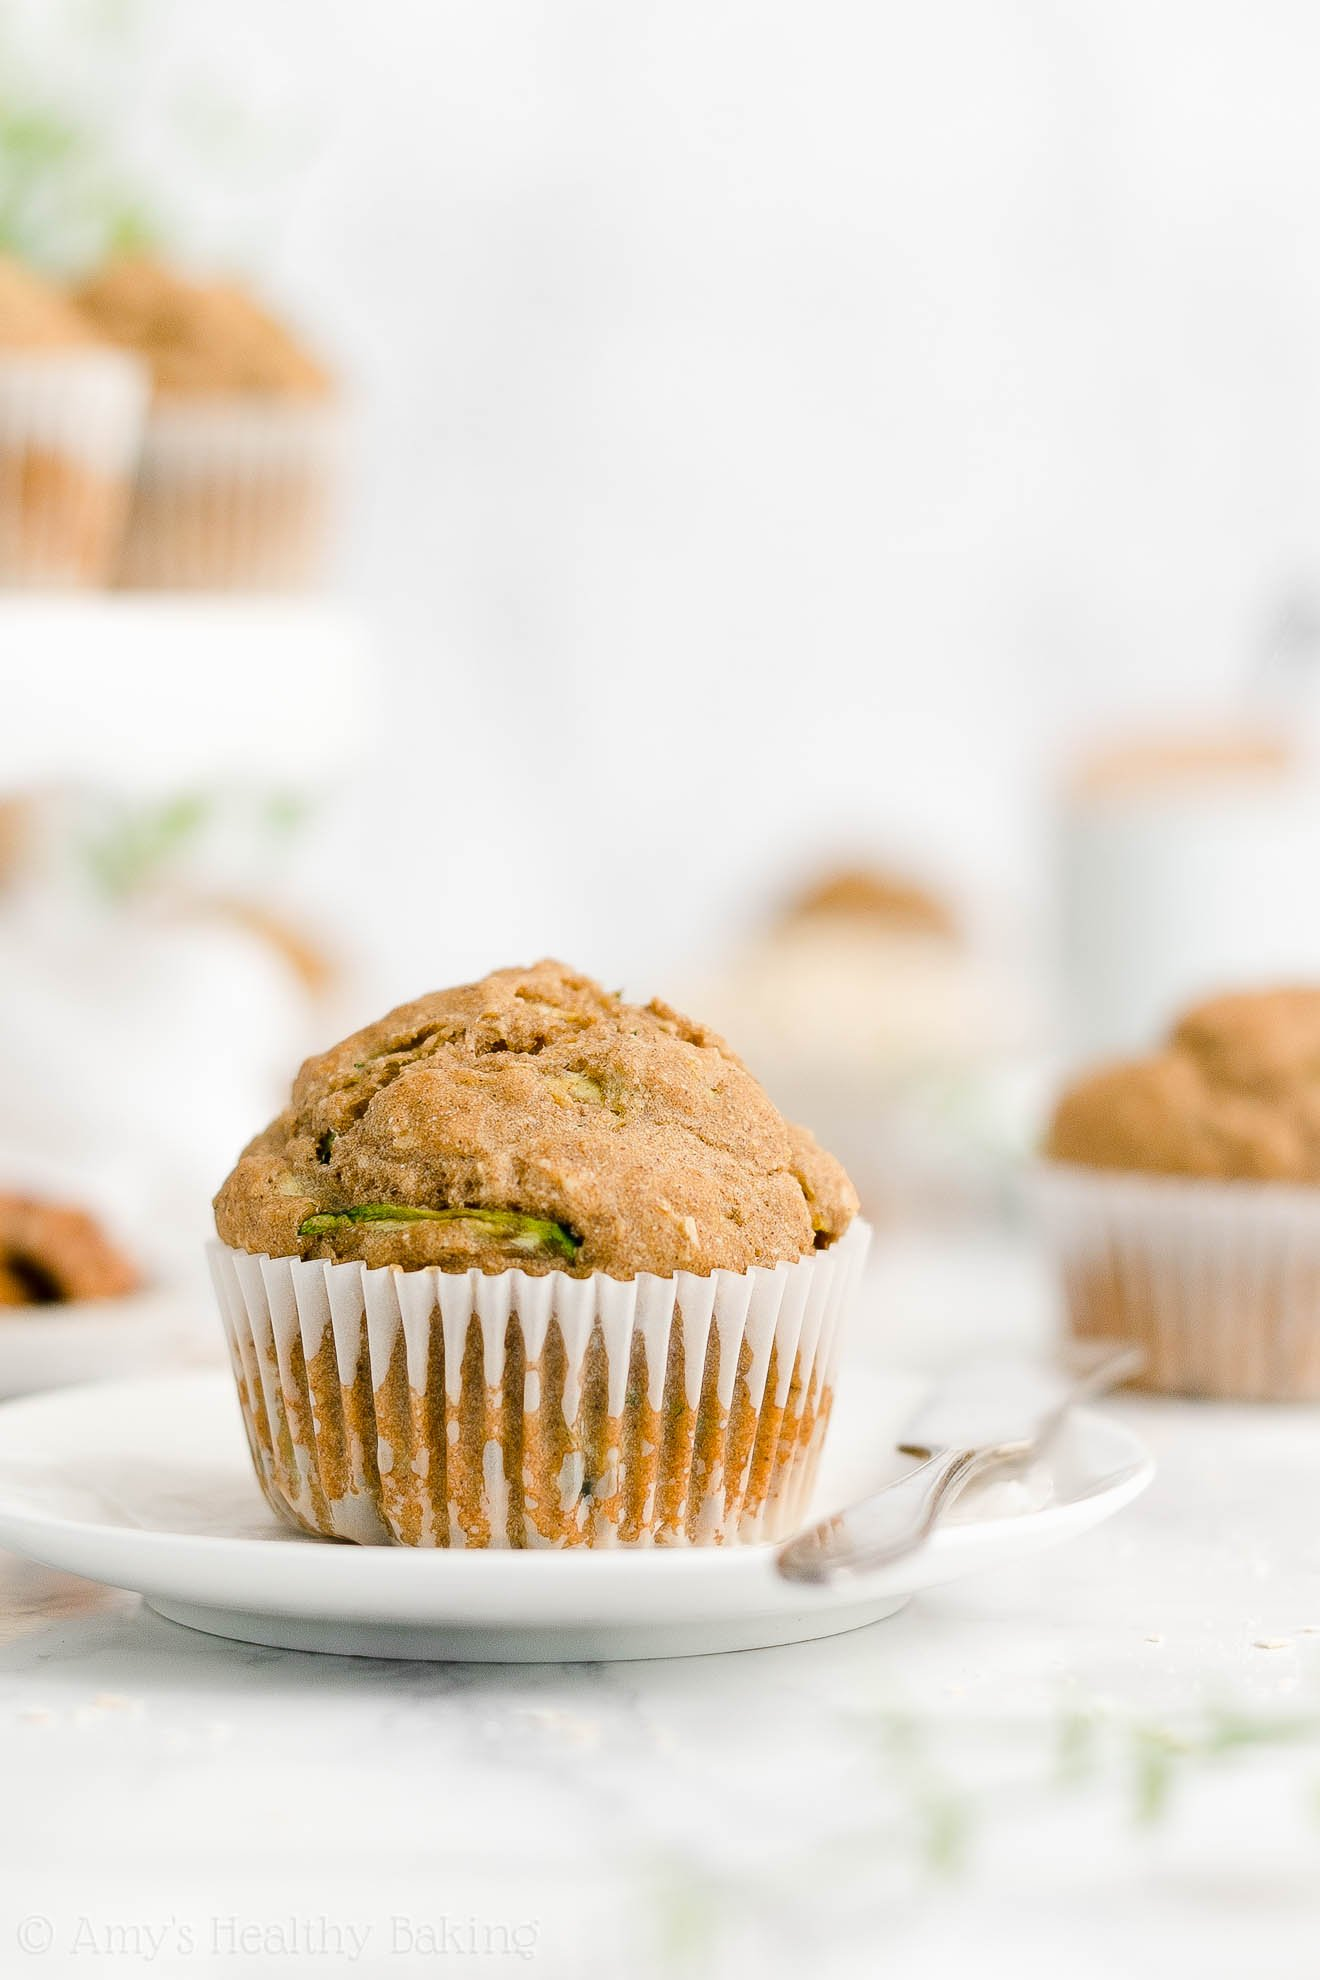 Best Easy Healthy Gluten Free Low Sugar Moist Yogurt Zucchini Oatmeal Muffins